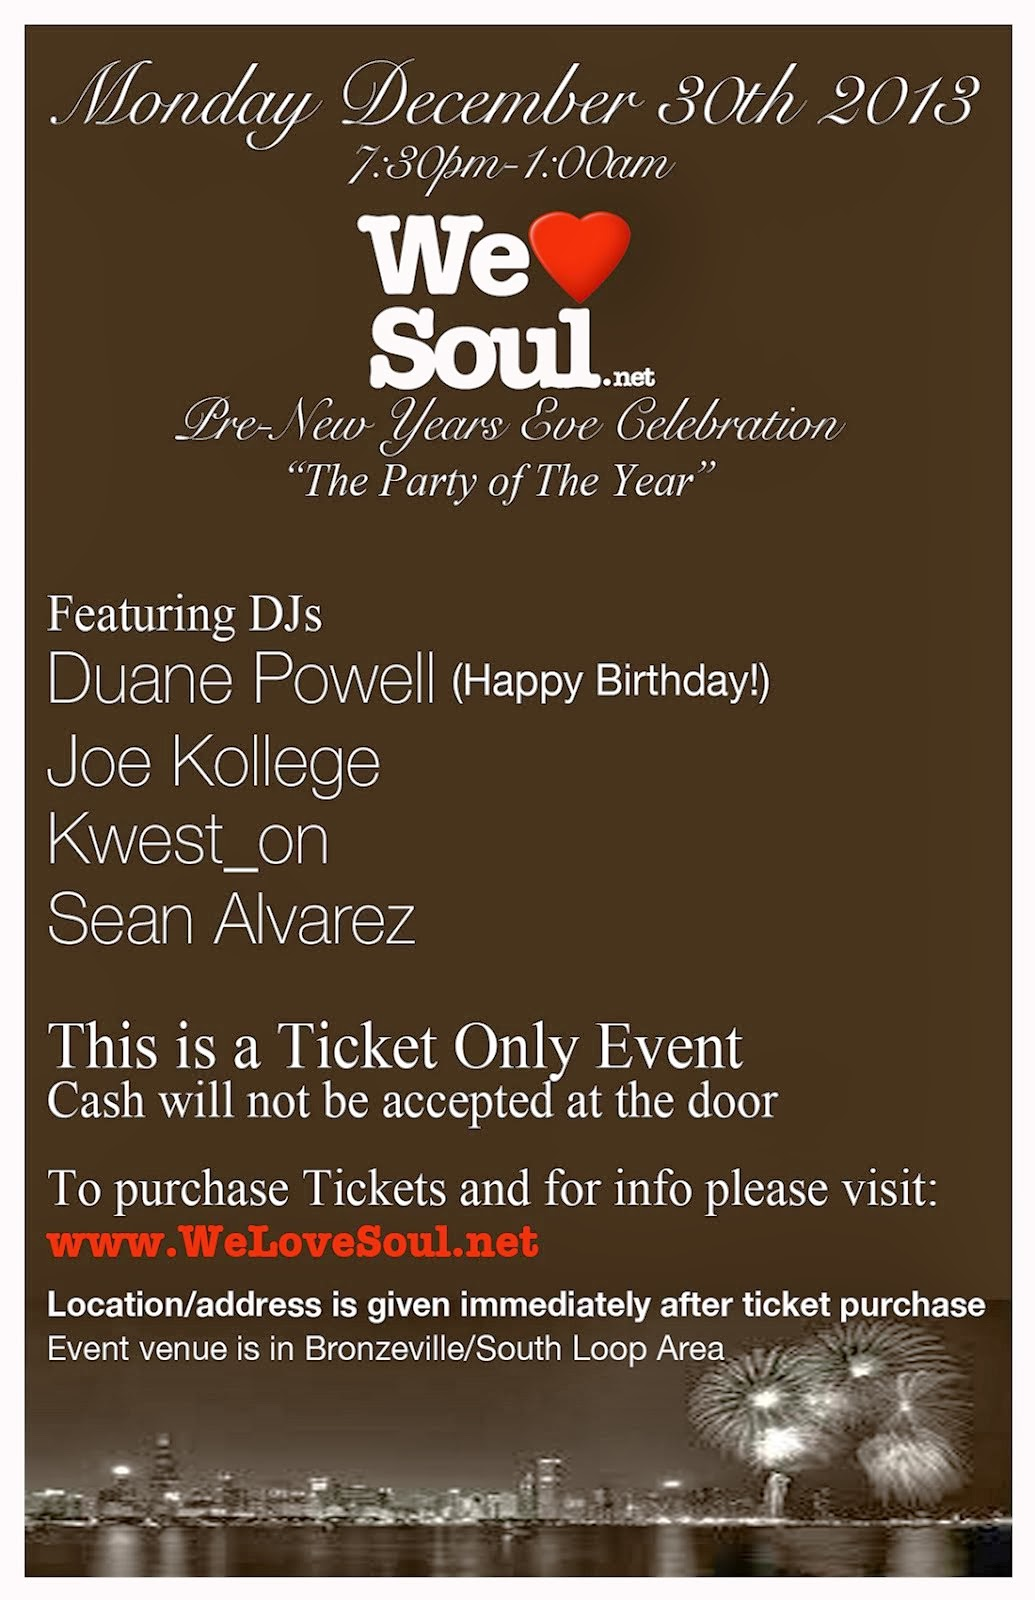 Monday 12/30: We Love Soul Pre-NYE Celebration